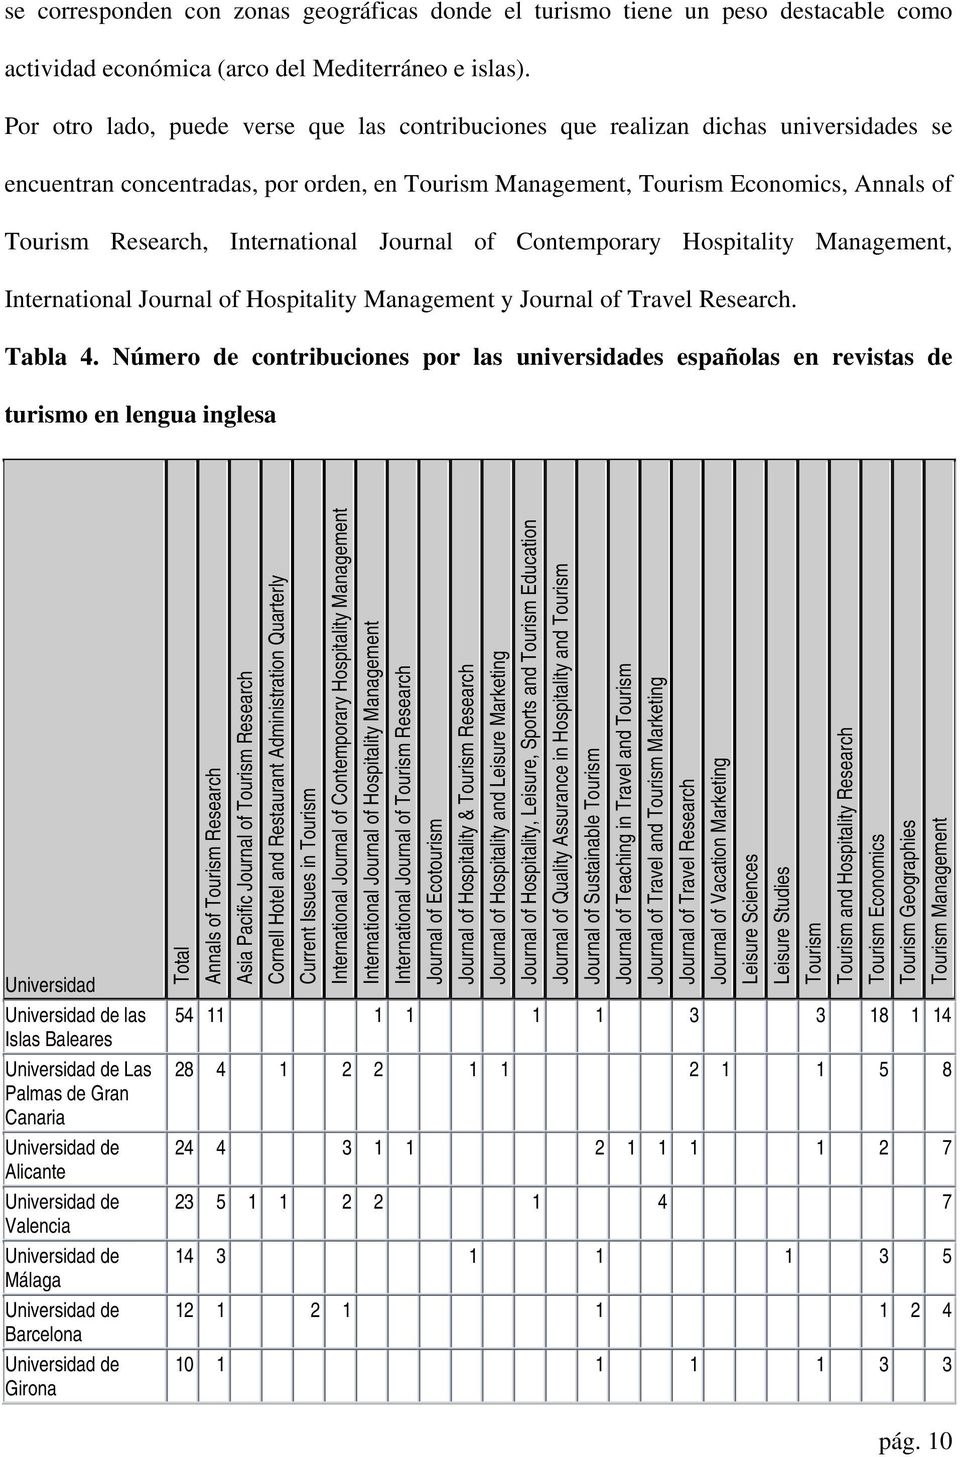 International Journal of Contemporary Hospitality Management, International Journal of Hospitality Management y Journal of Travel Research. Tabla 4.